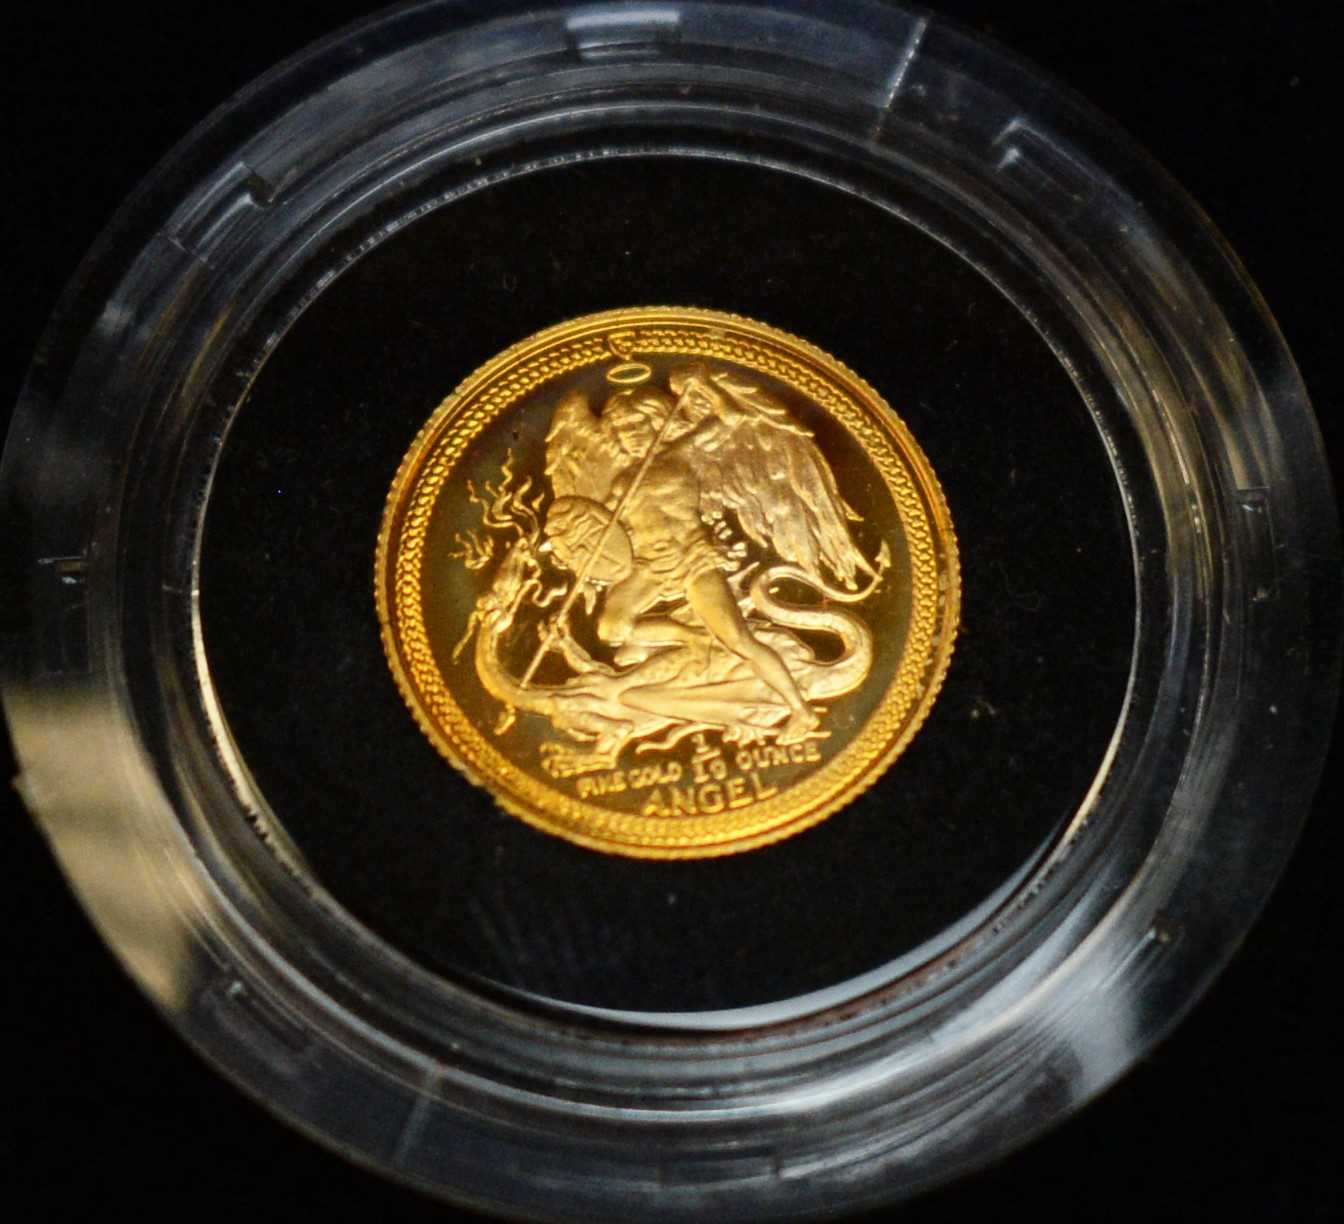 Pobjoy gold and platinum coins - Image 4 of 4